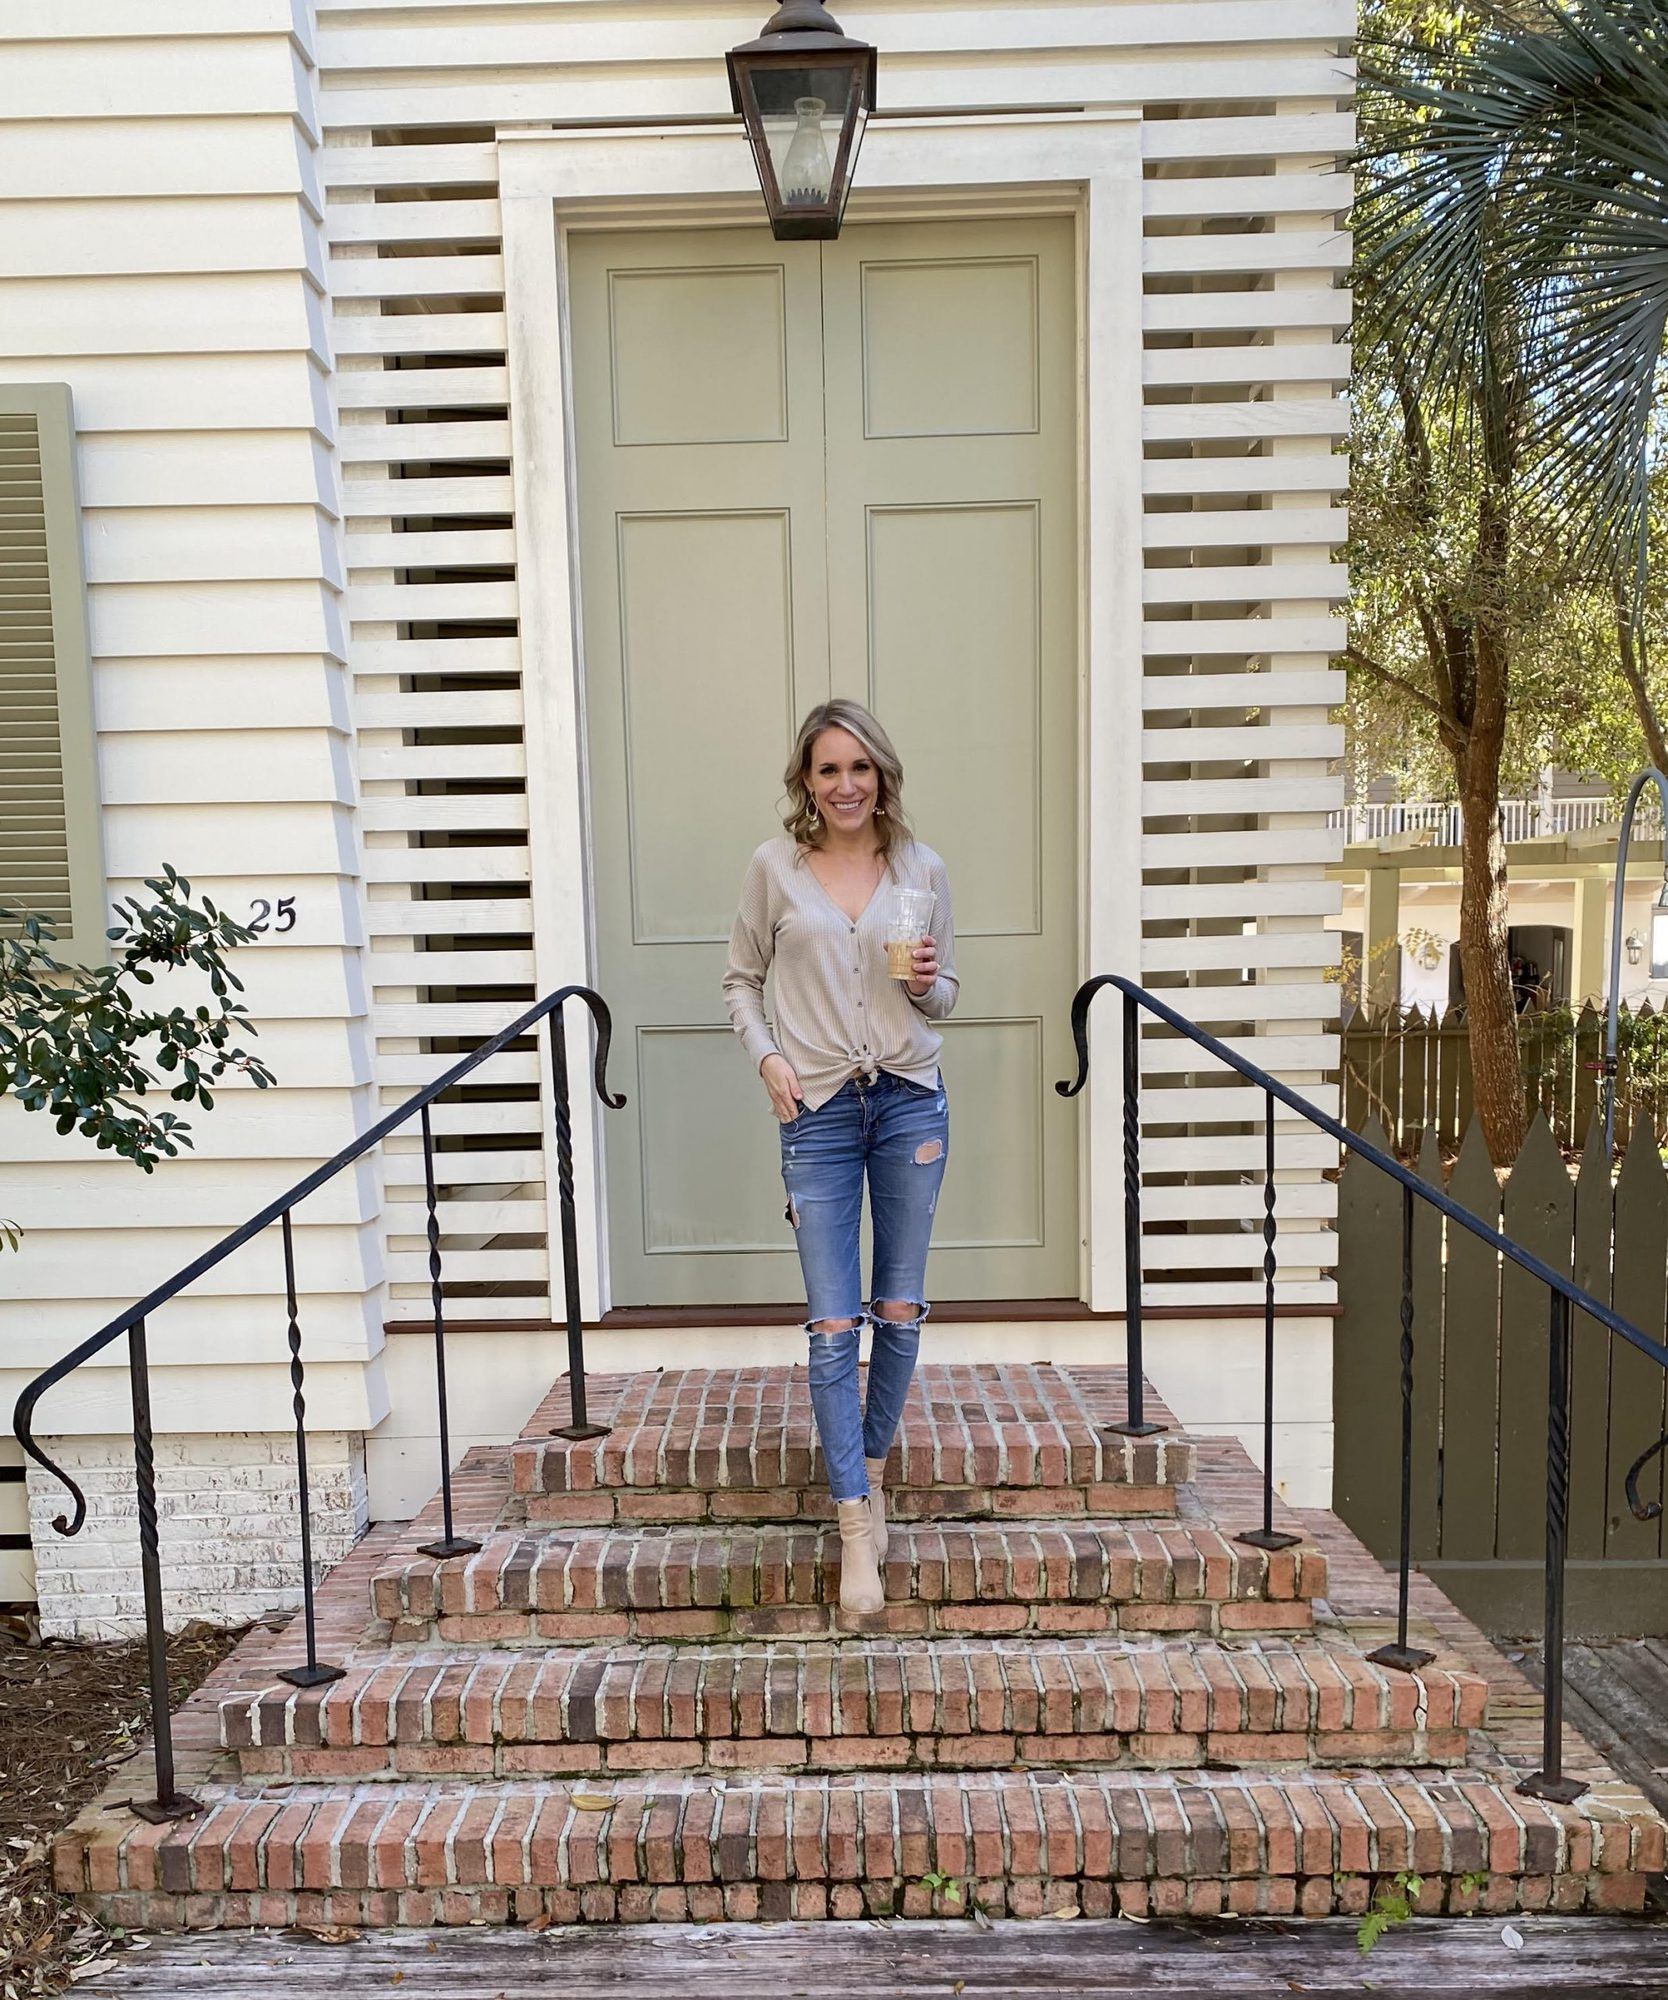 fashionable woman walking out of house with coffee |Abercrombie and Fitch Winter Favorites by popular Michigan fashion blog, The House of Navy: image of a woman wearing a long sleeve knot tie shirt, distressed denim, and tan suede ankle boots.